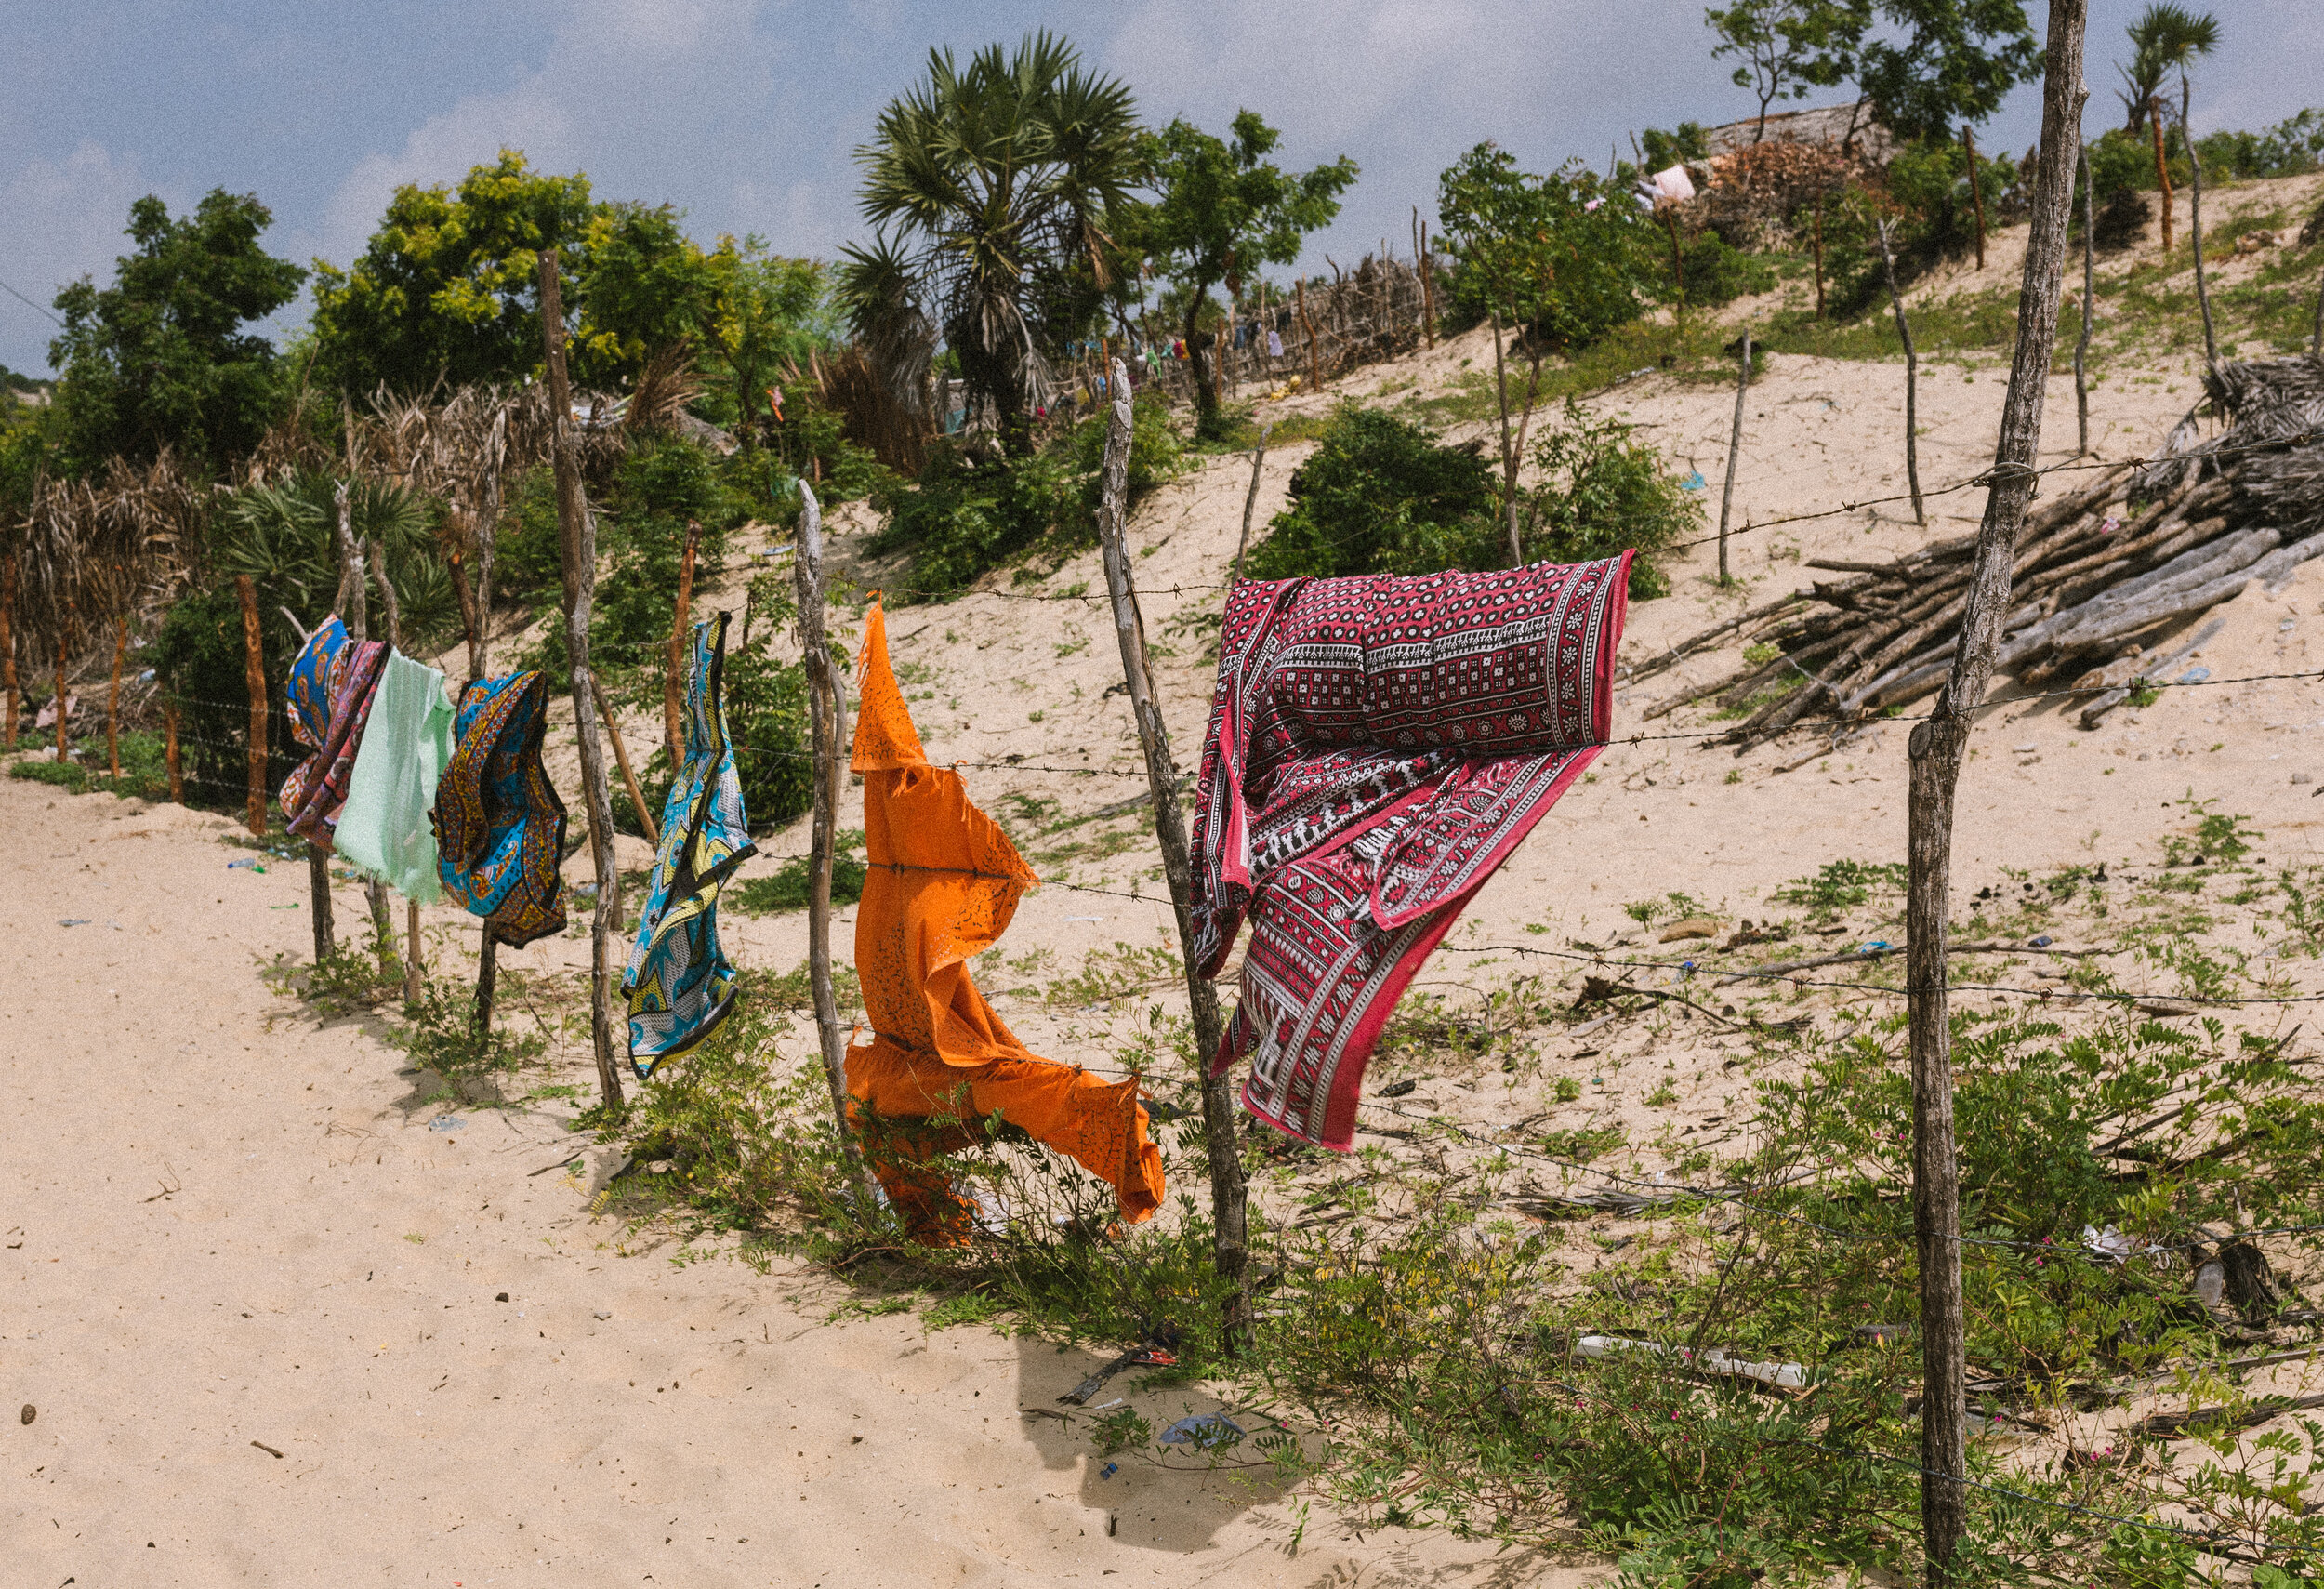 lamu_kenya_ashlee_oneil_photo_village.jpg